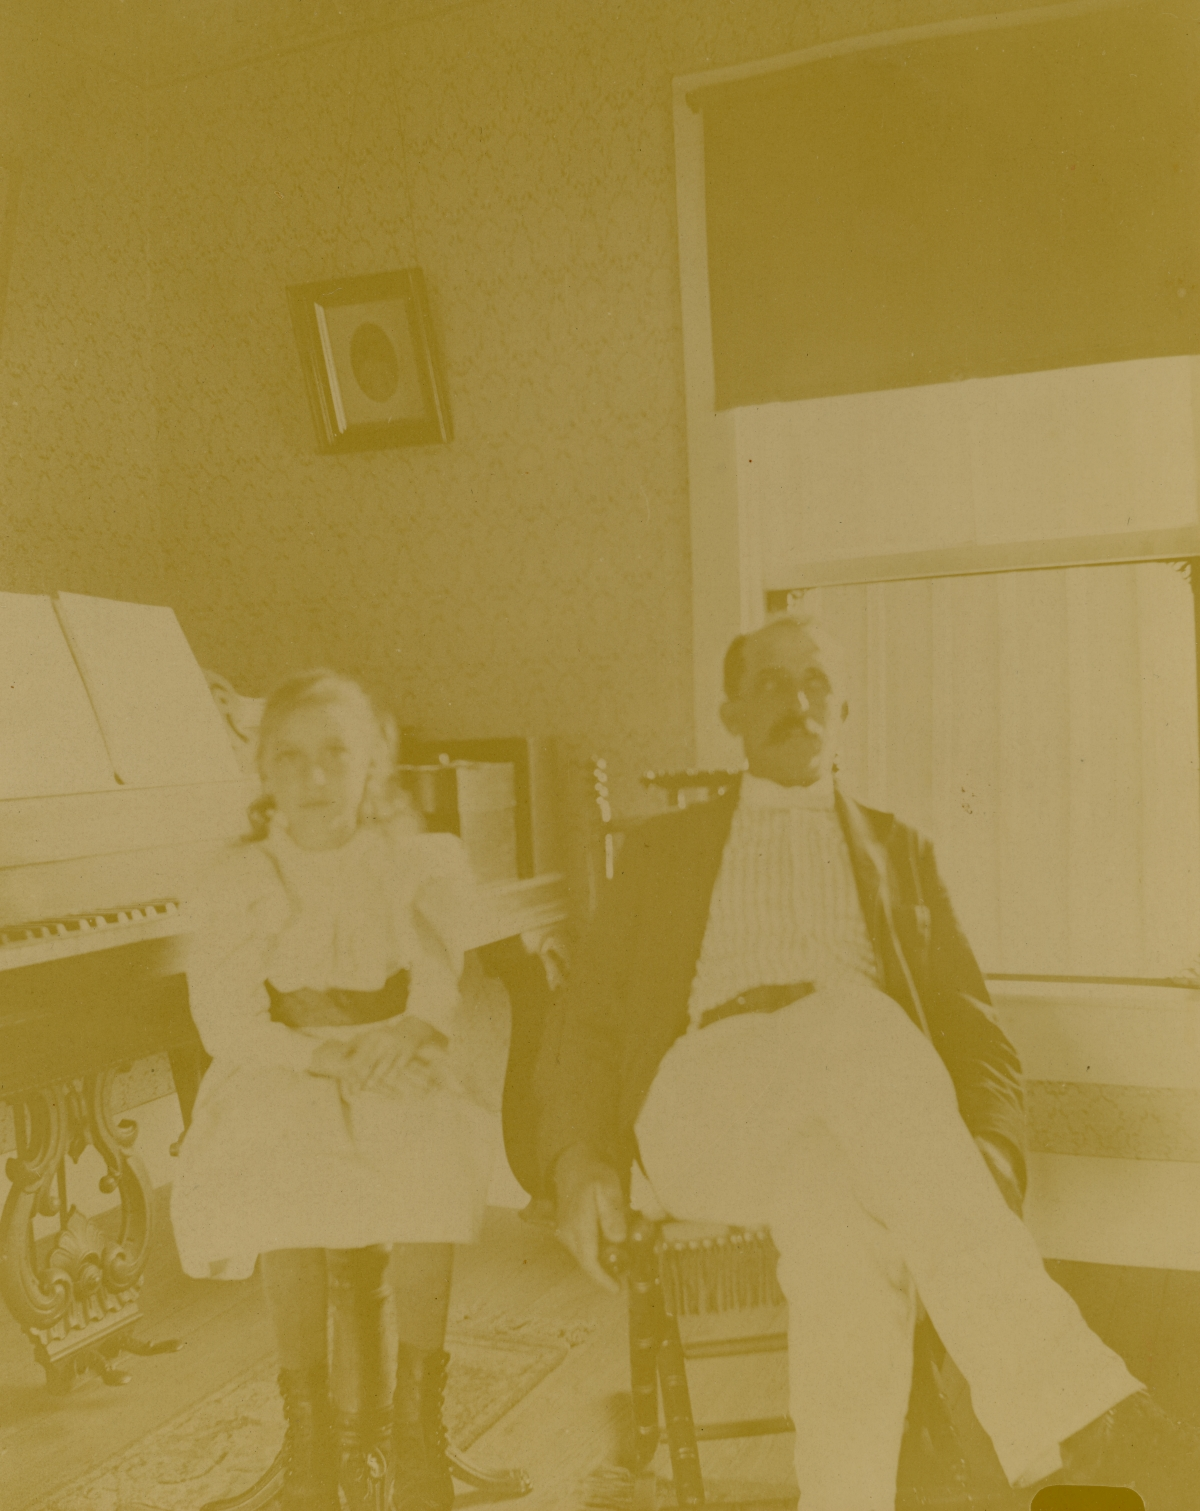 Horace Prior with his daughter Leila in Pomona.